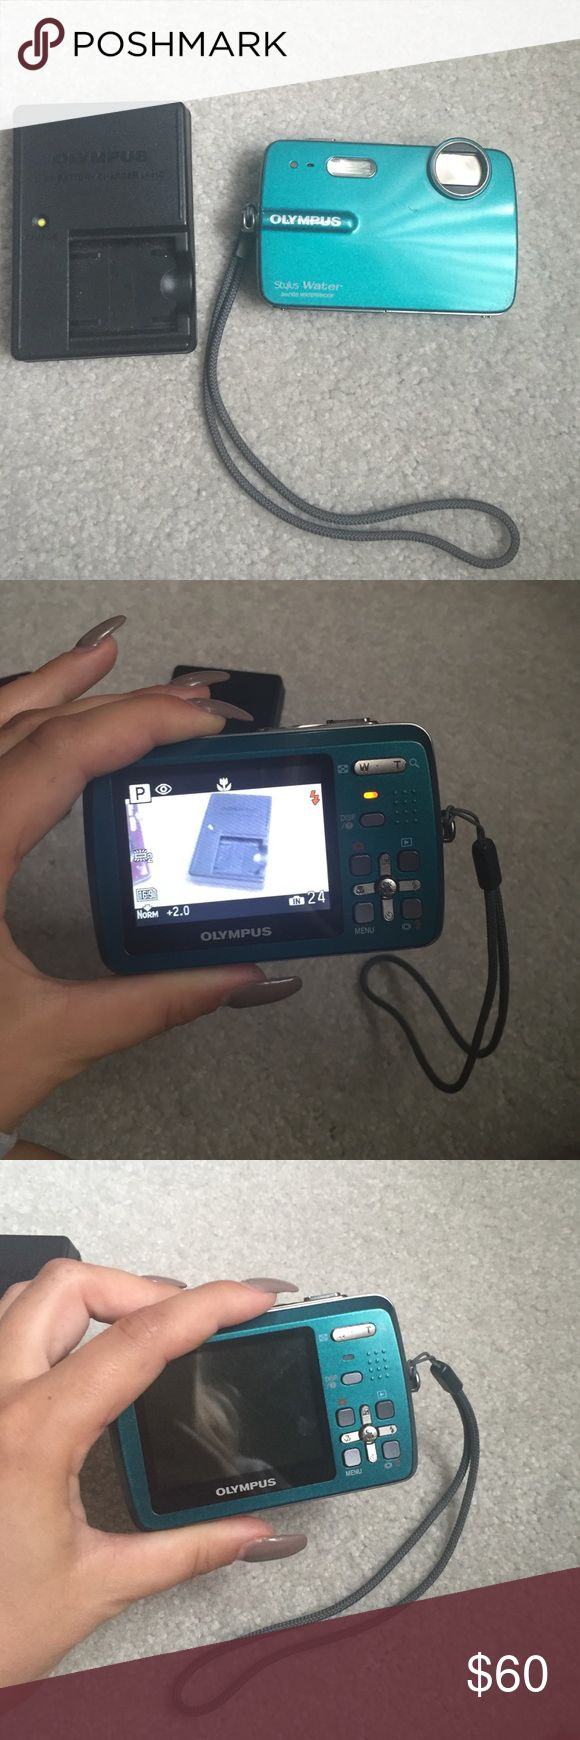 Olympus underwater camera incl: charger & battery Olympus teal underwater camera includes charger and battery Other